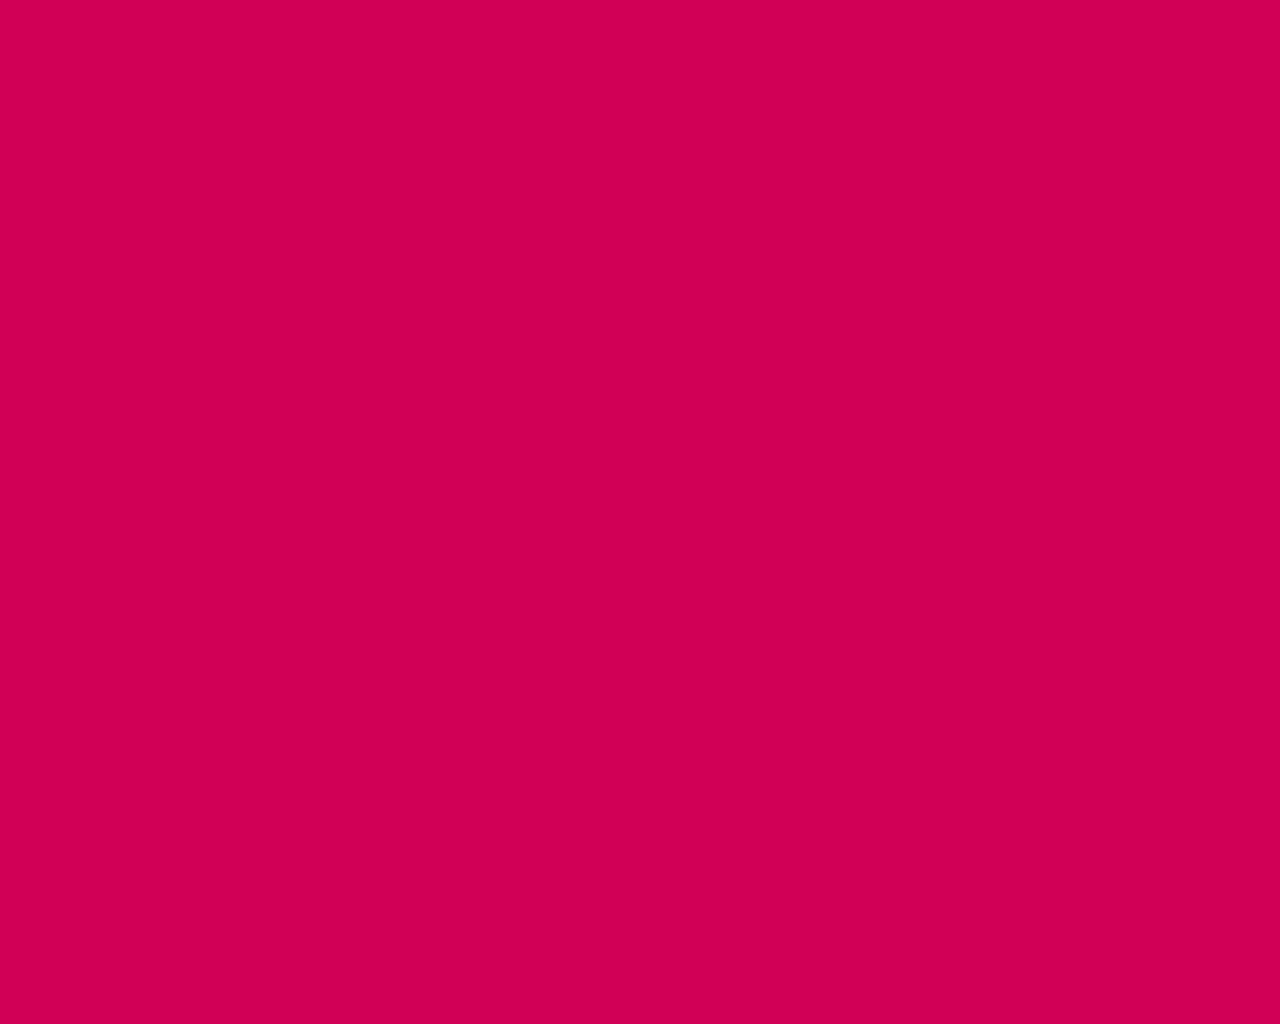 1280x1024 Rubine Red Solid Color Background